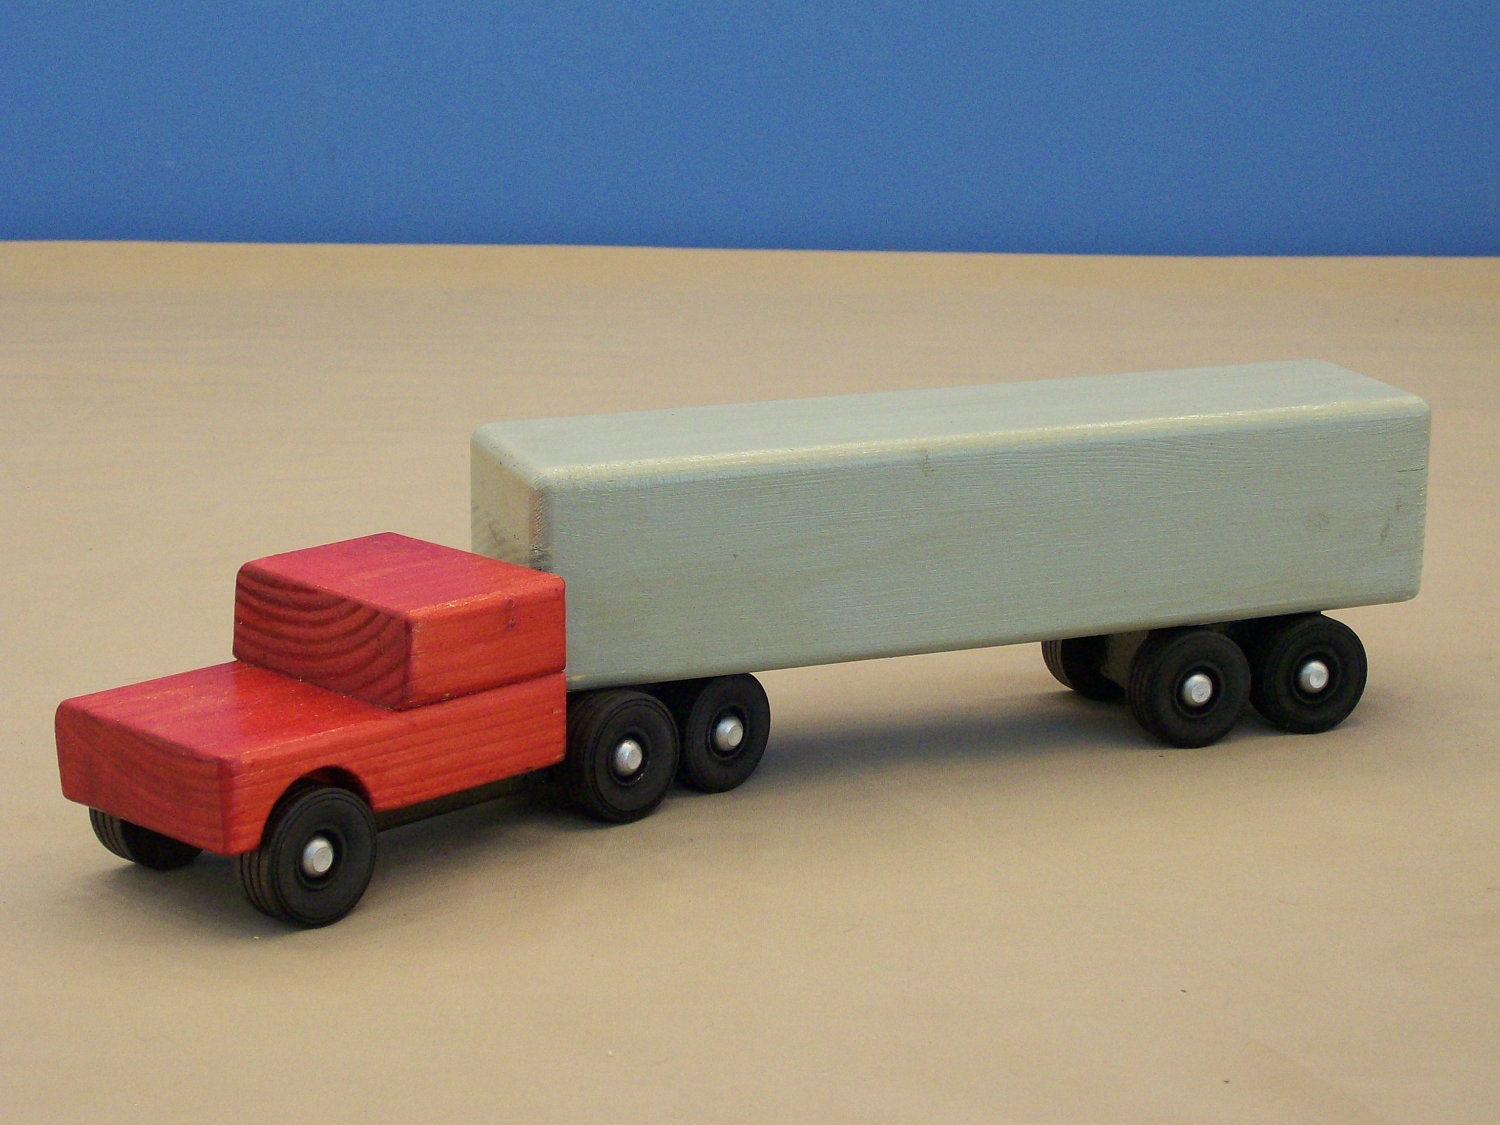 ... wooden toy trucks displaying 18 images for wooden toy trucks toolbar